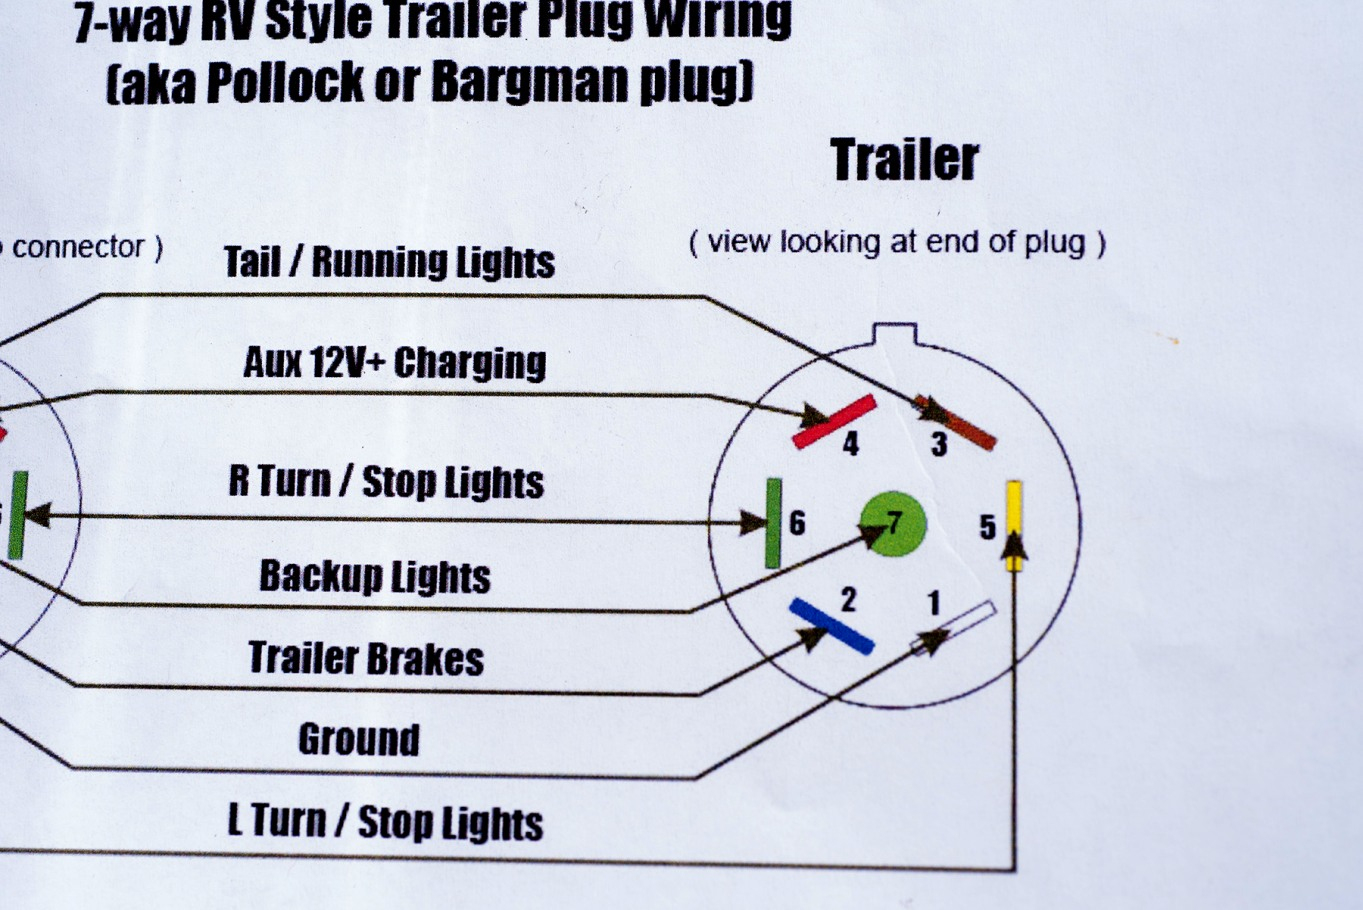 7 Round Trailer Wiring Diagram - Wiring Diagrams Hubs - Trailer Wiring Diagram 7 Way Round